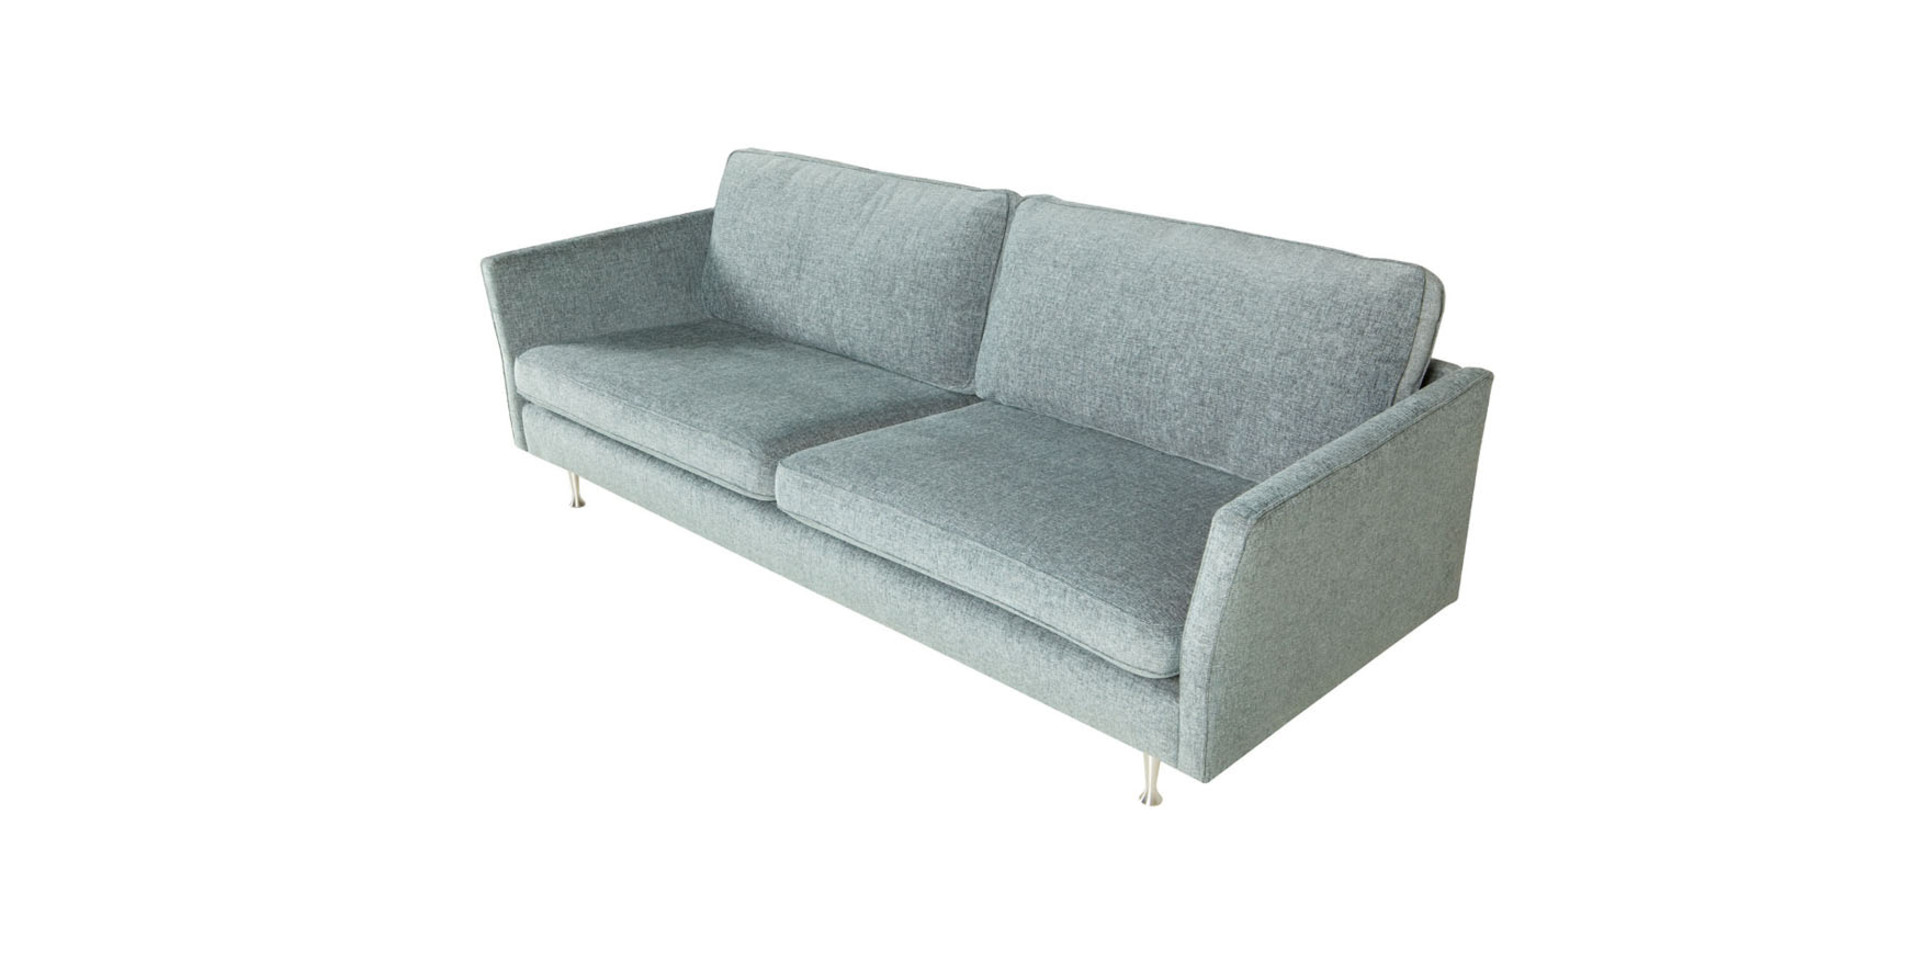 sits-freddy-canape-3seater_divine40_light_blue_4_1_0